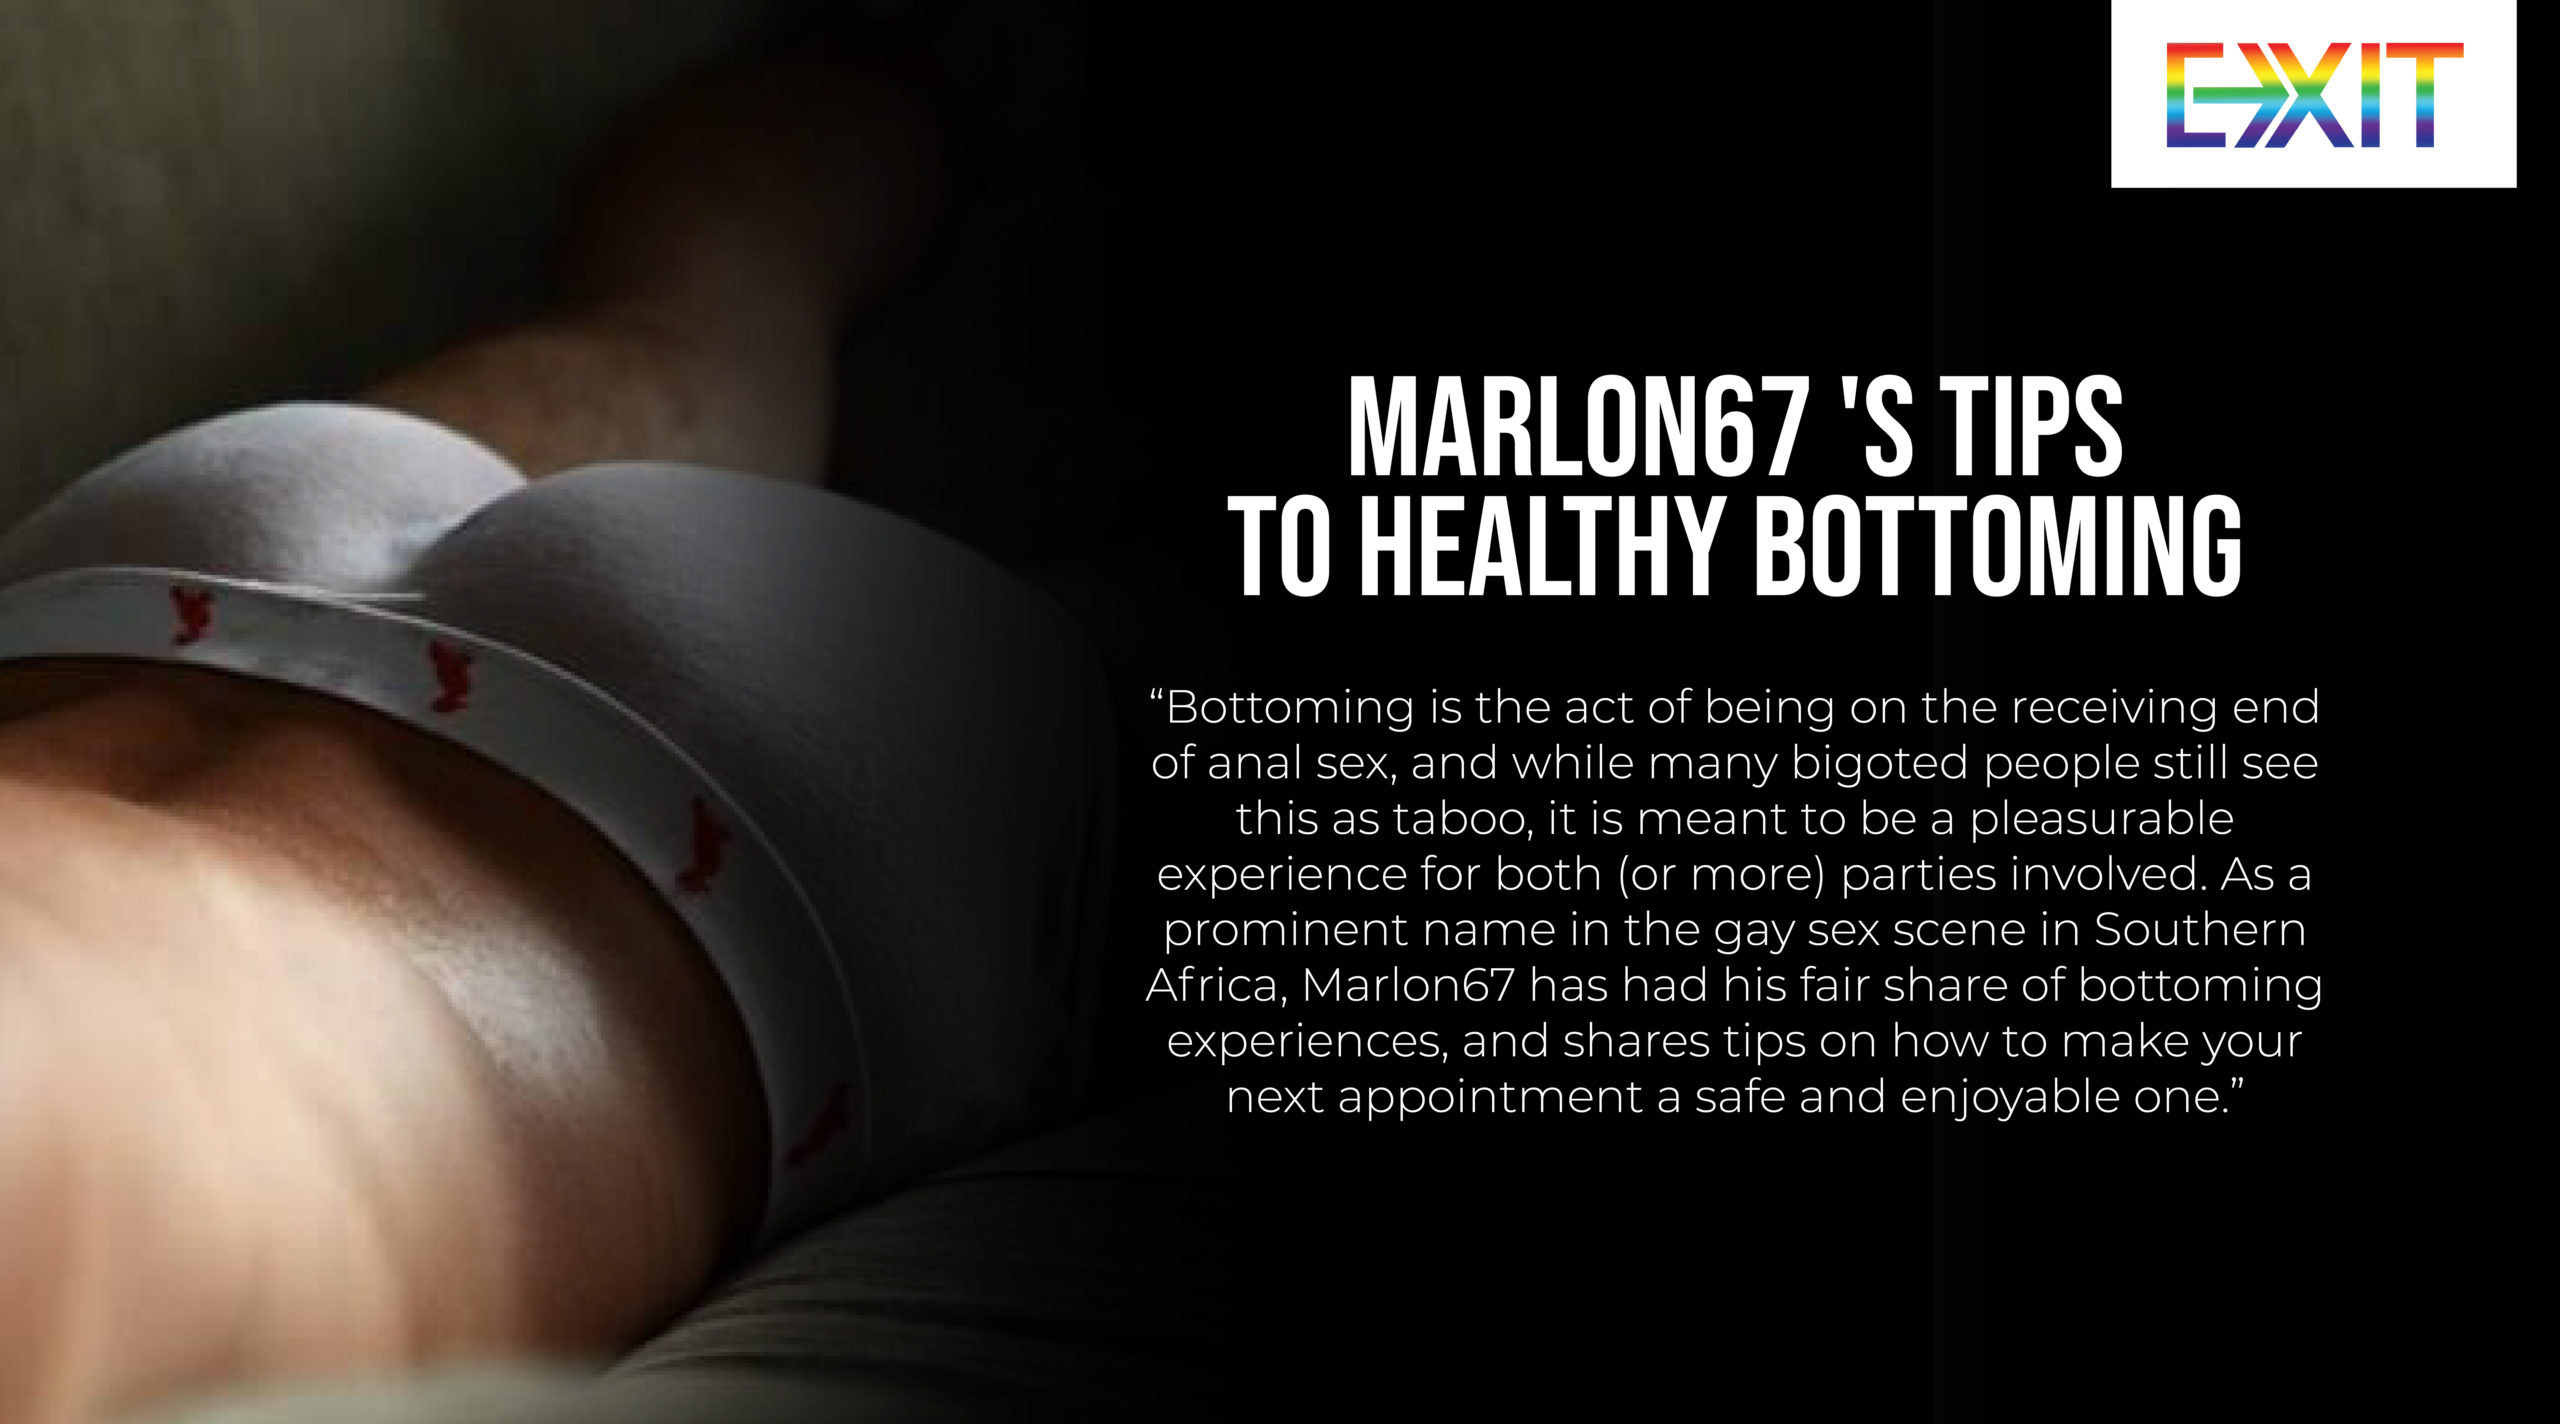 MARLON67 'S TIPS TO HEALTHY BOTTOMING